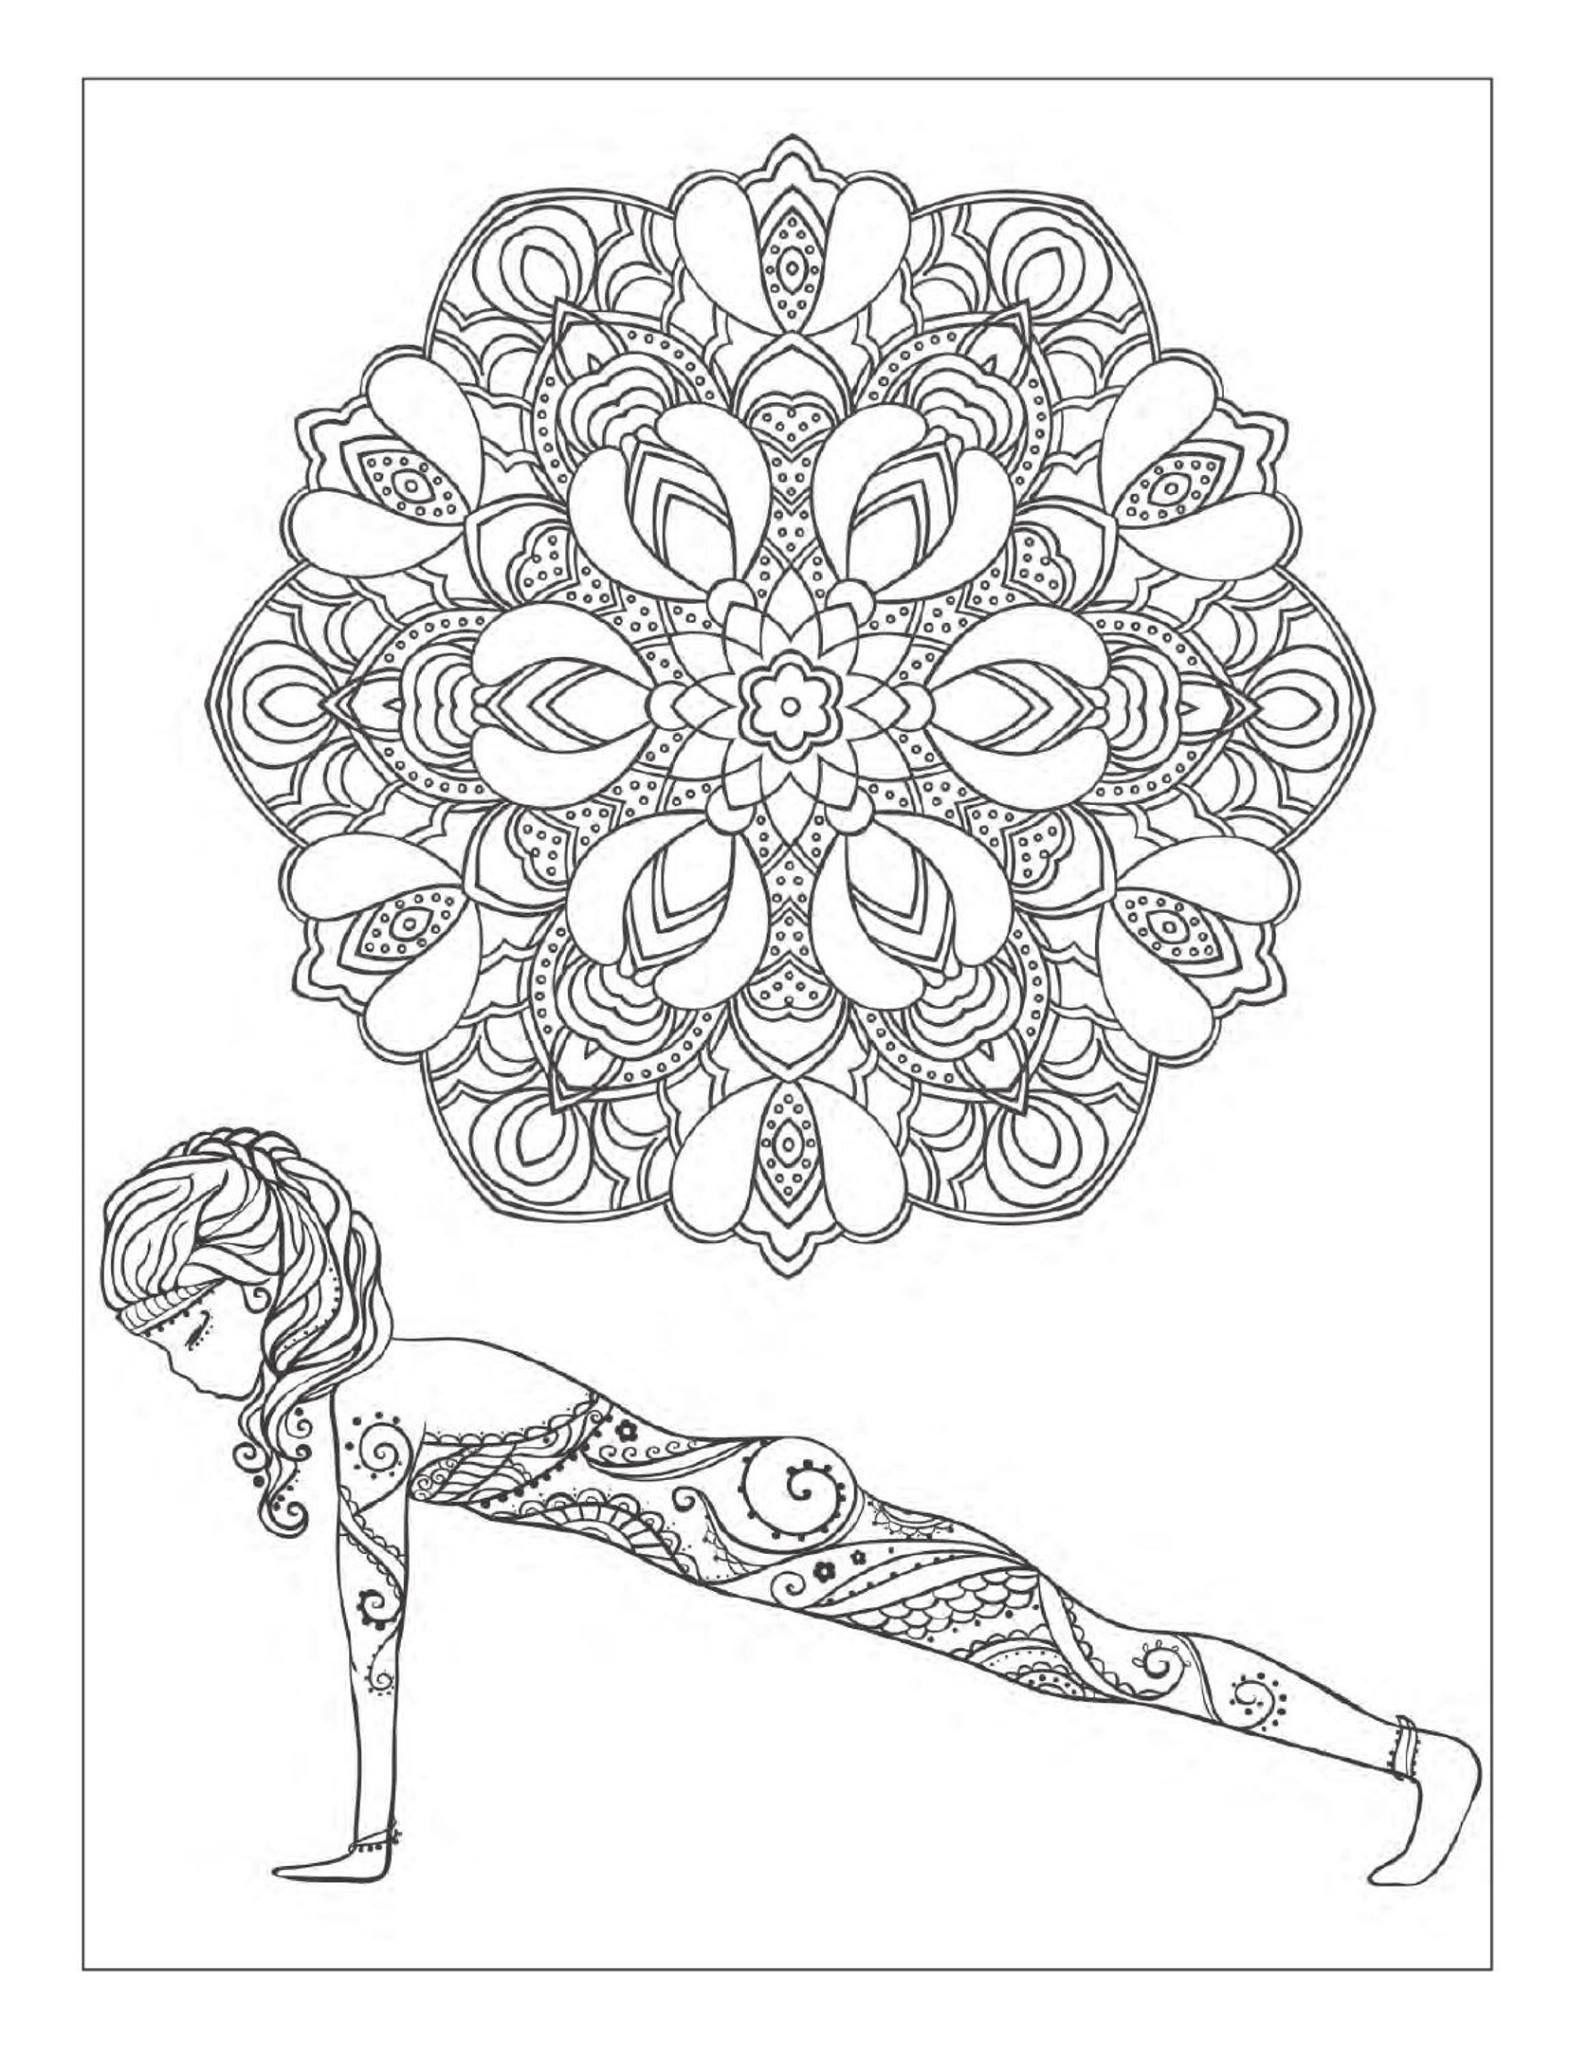 yoga mandala coloring pages yoga and meditation coloring book for adults with yoga coloring mandala yoga pages